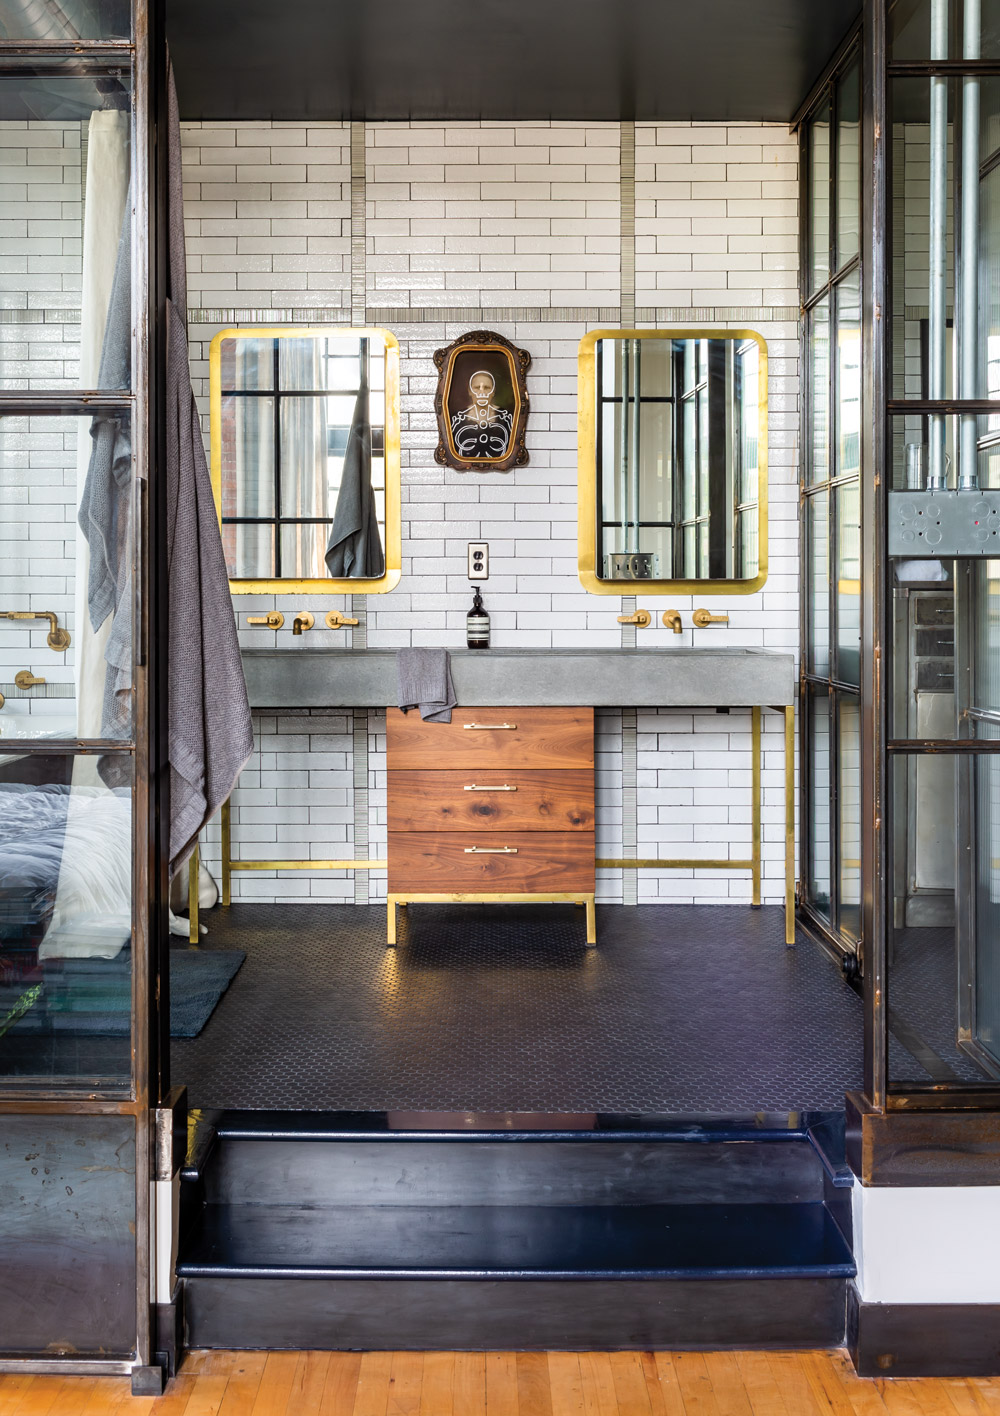 Elizabeth Ingram and Alton Brown's Marietta loft